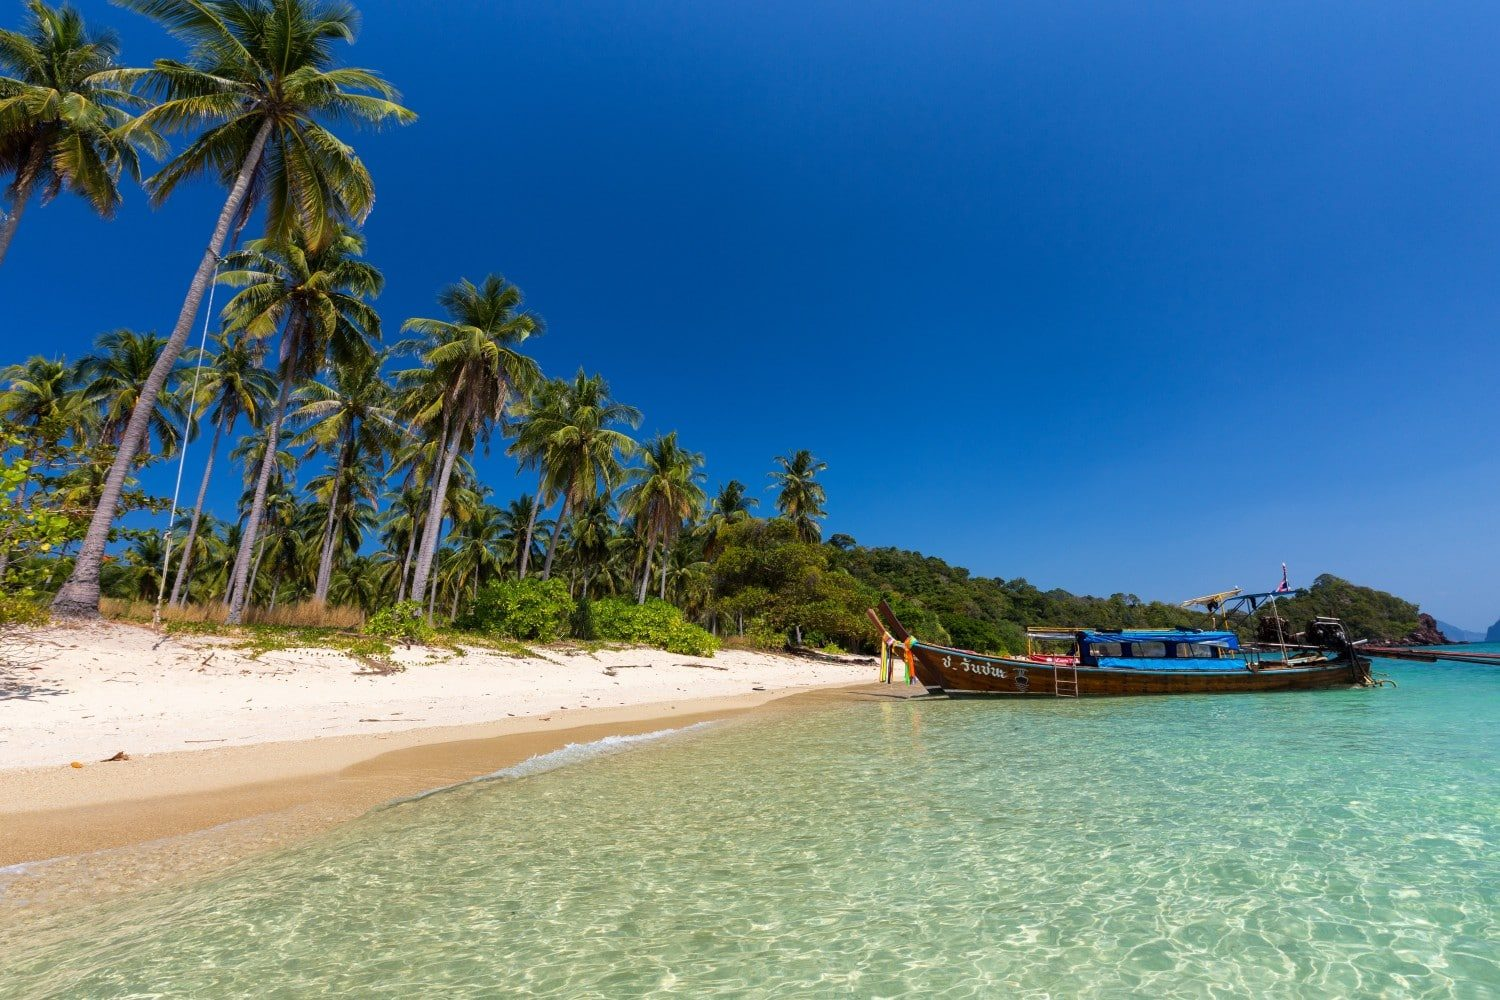 Thailand is a great cheap backpacking destination